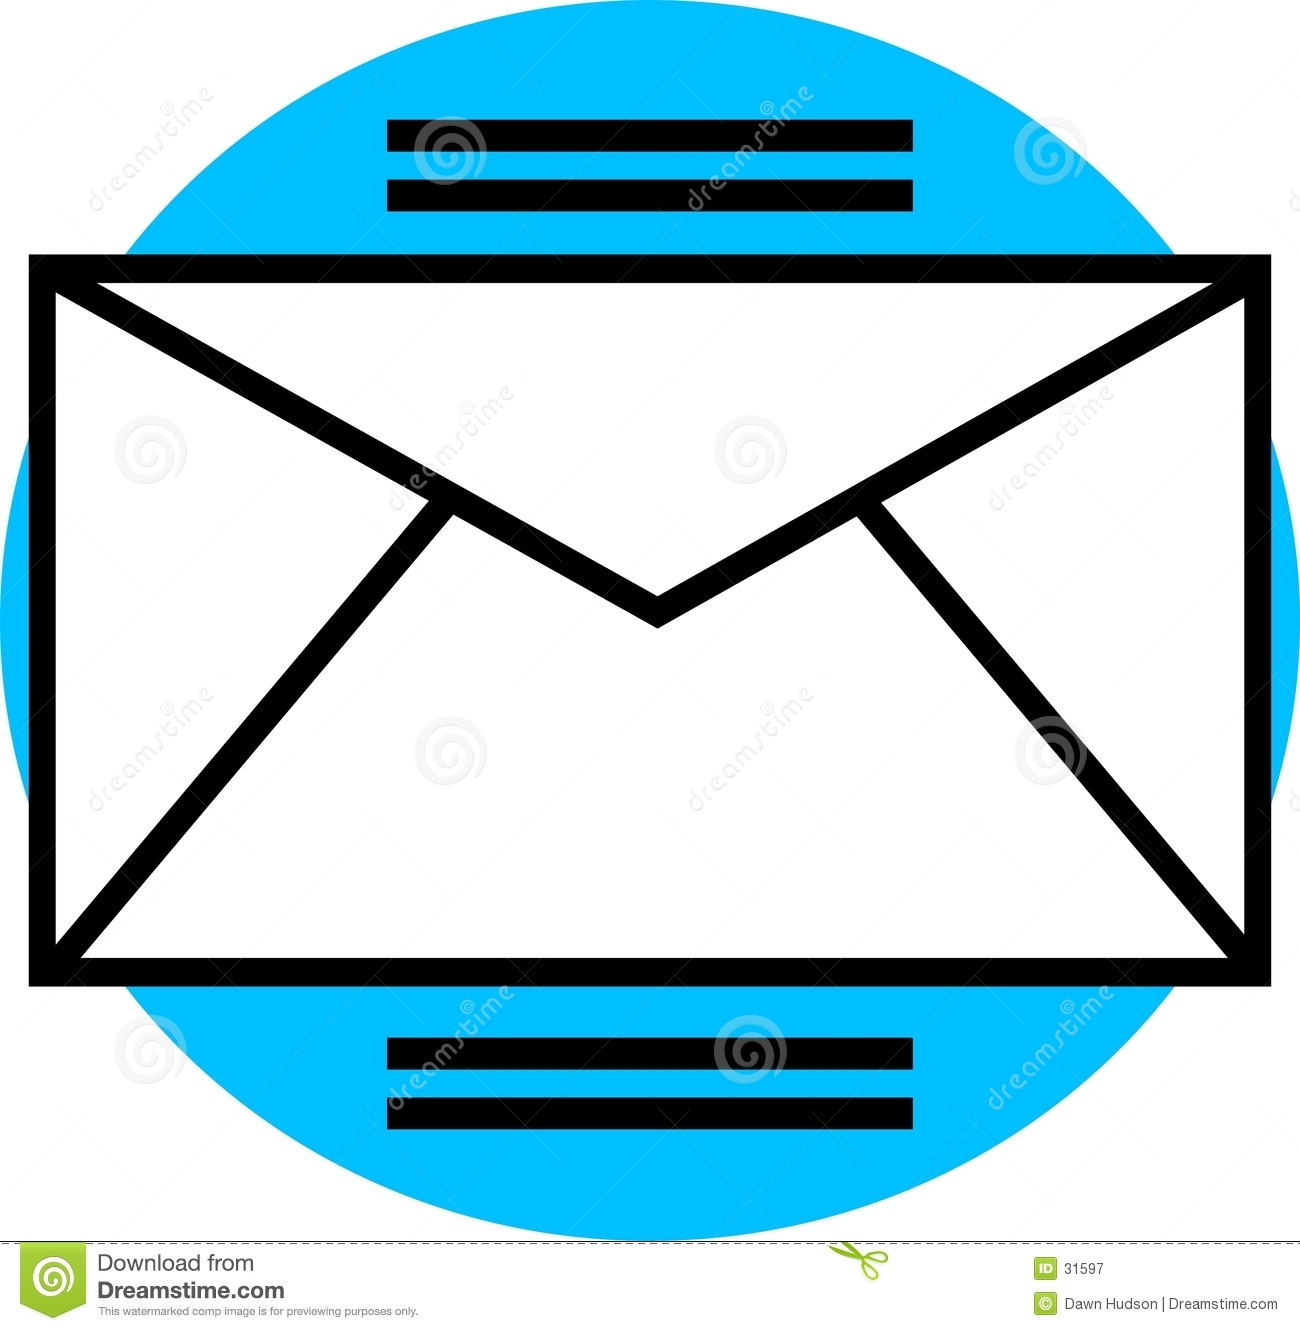 Gráfico del email